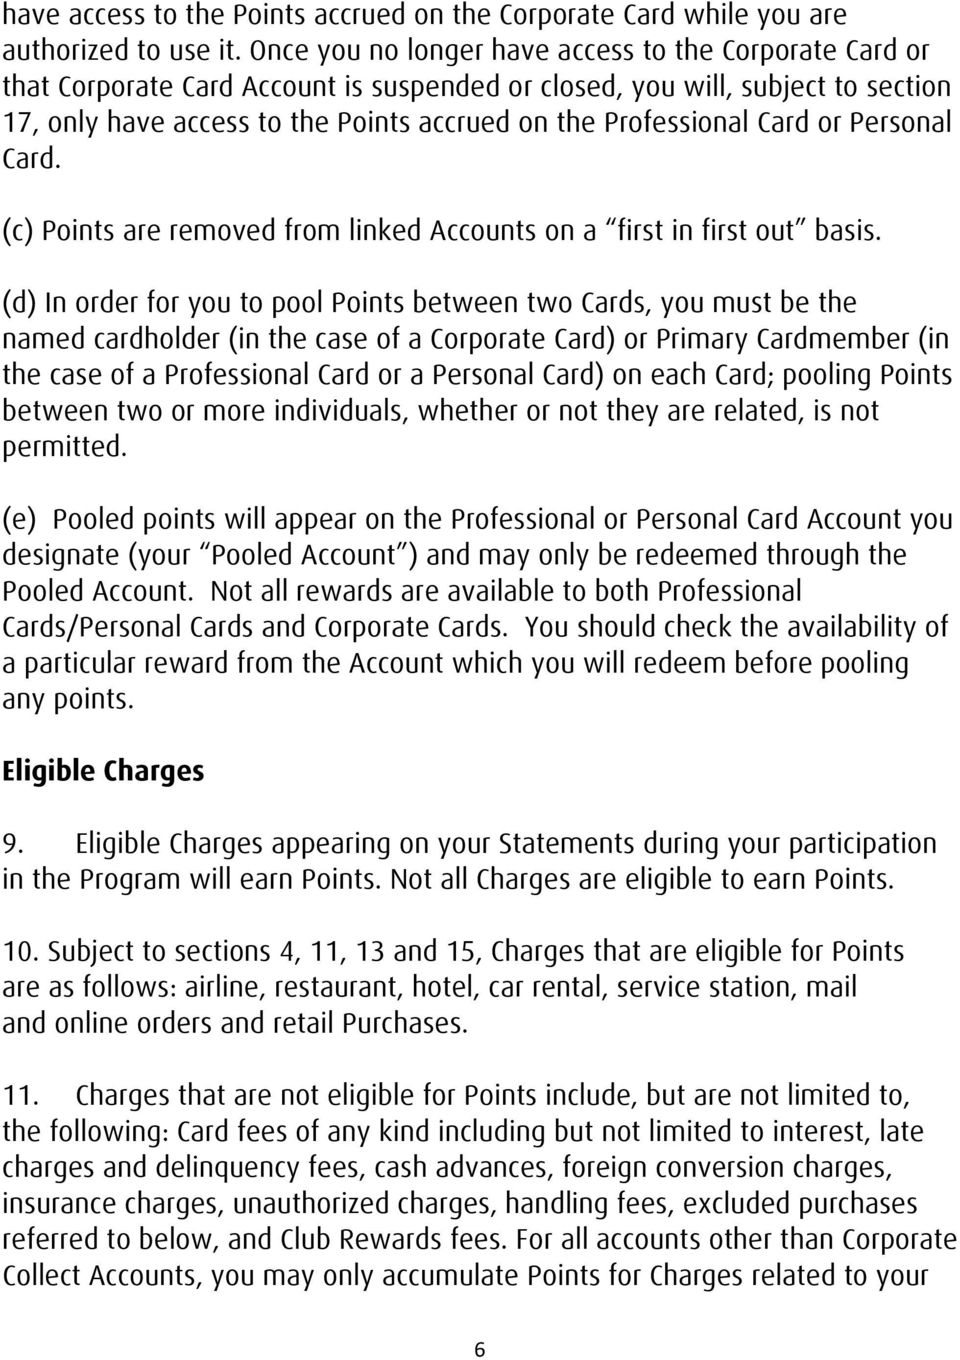 Card or Personal Card. (c) Points are removed from linked Accounts on a first in first out basis.